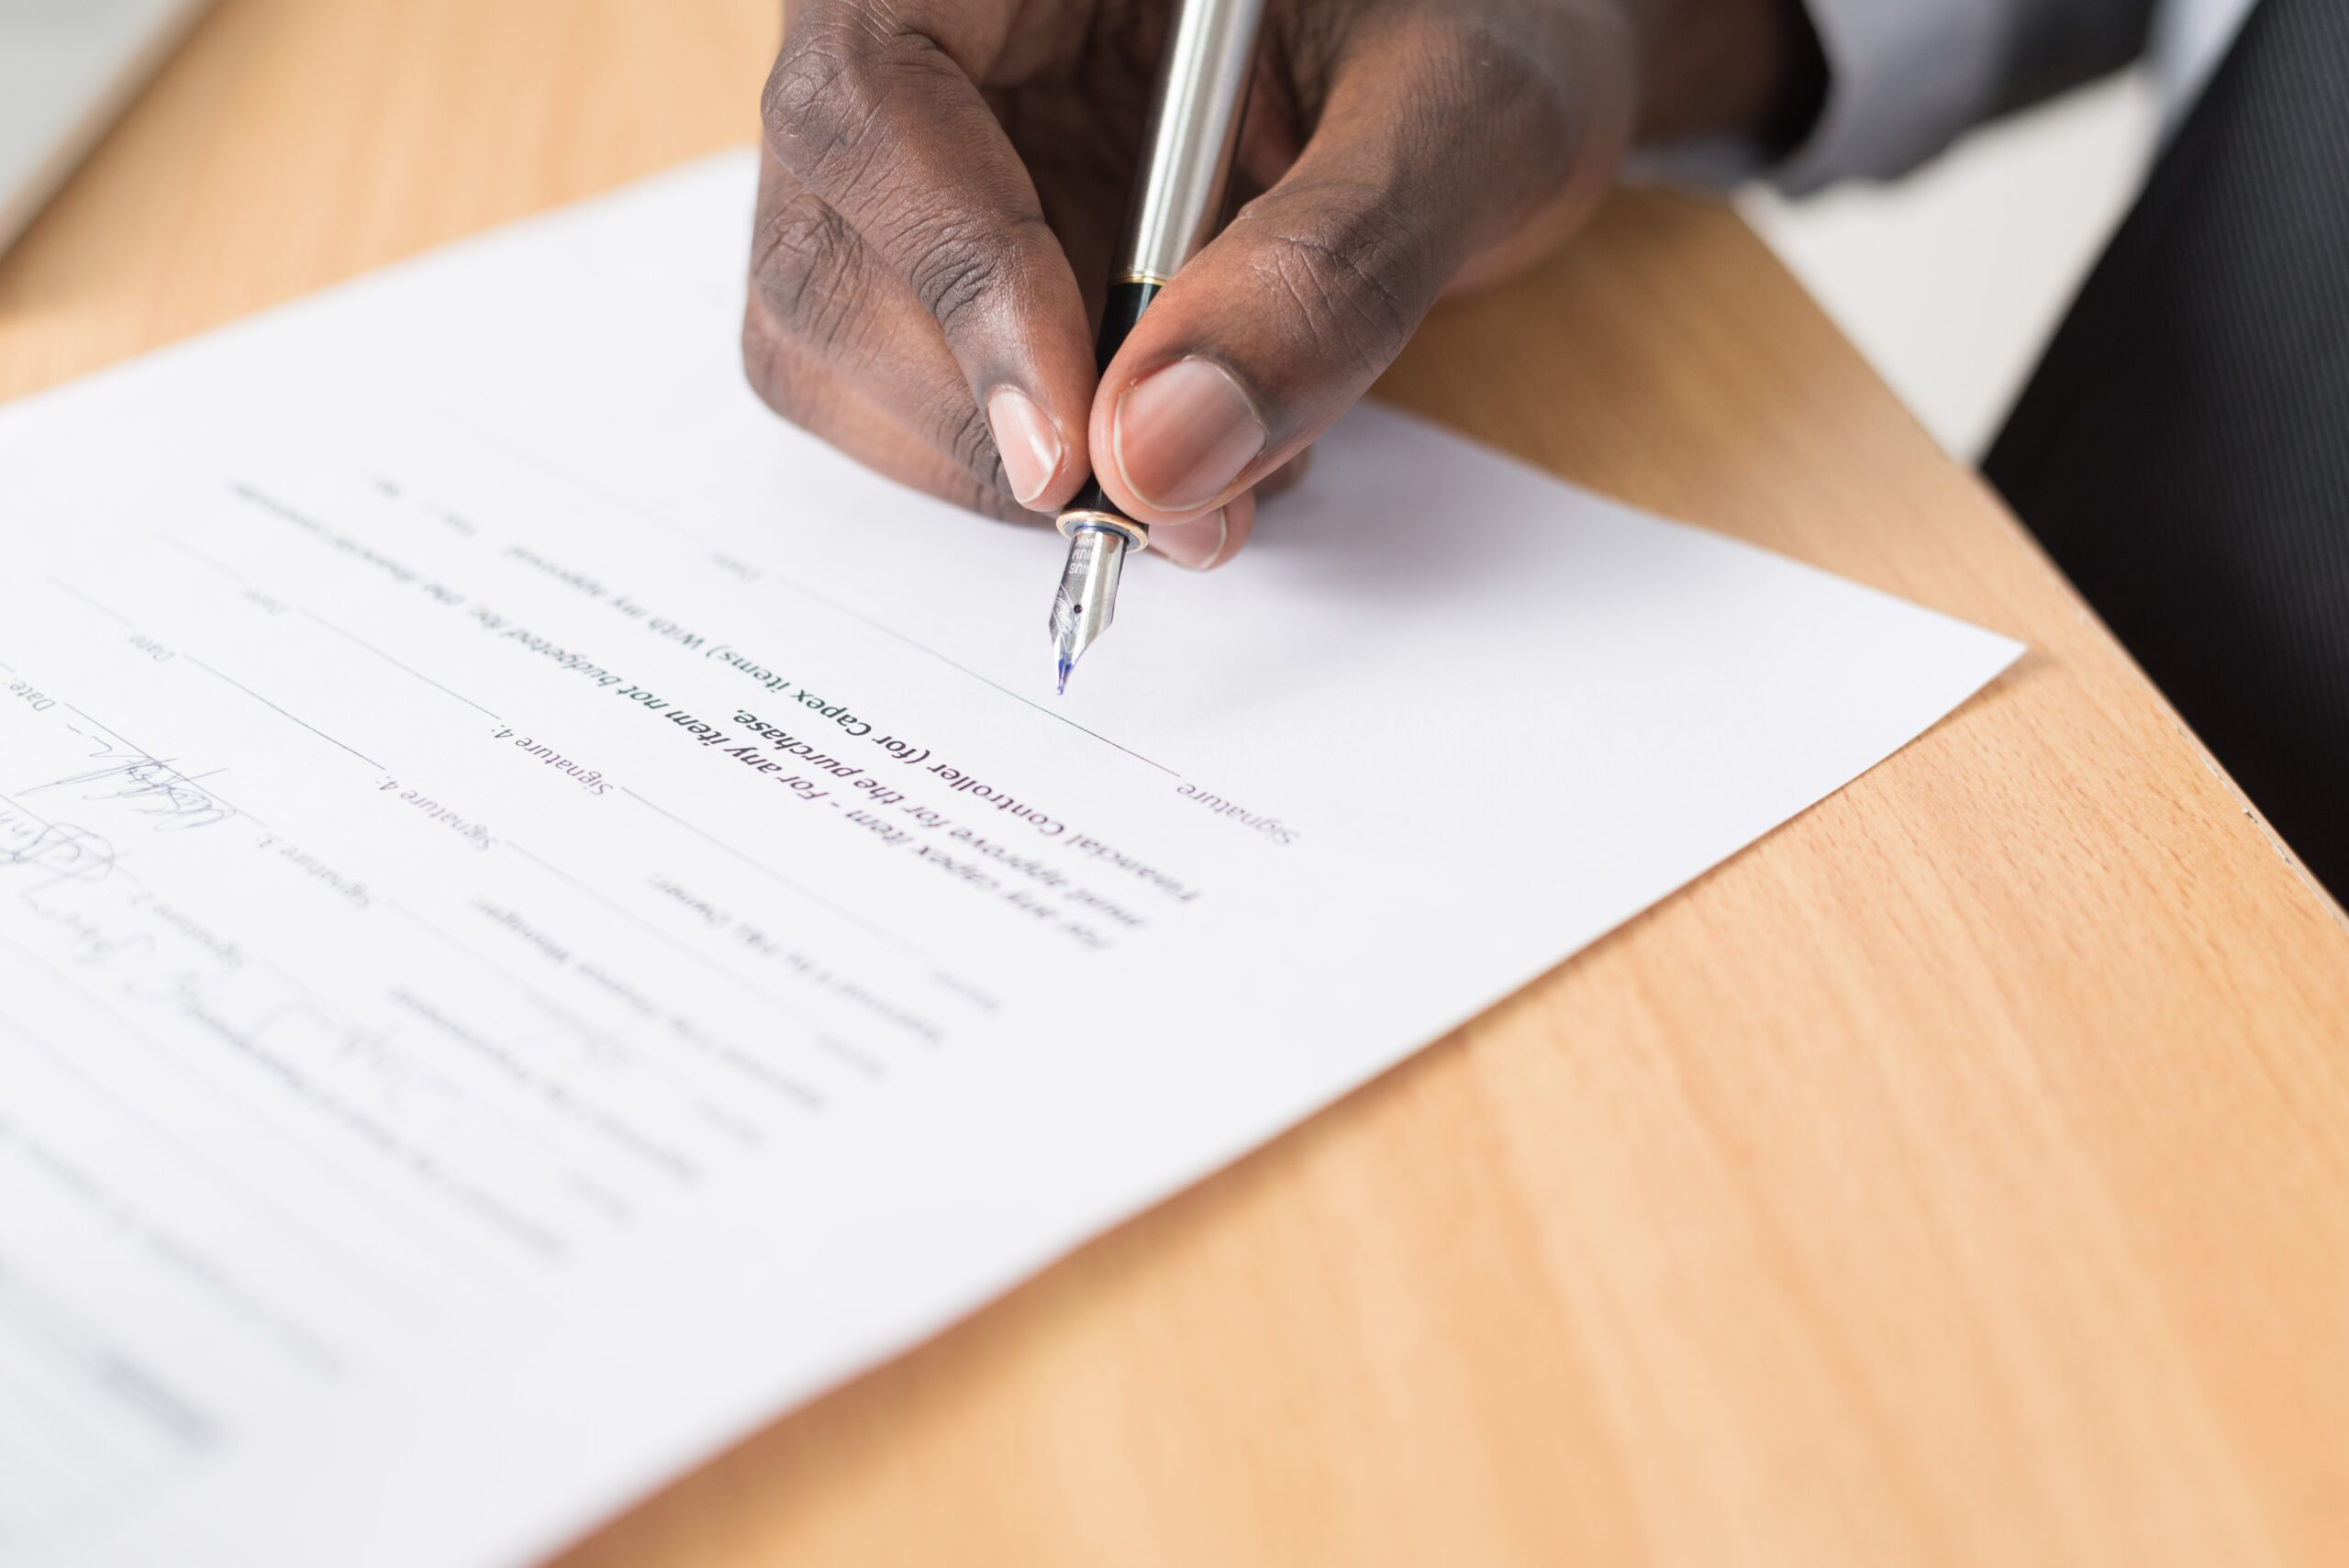 Man signing a contract with a pen